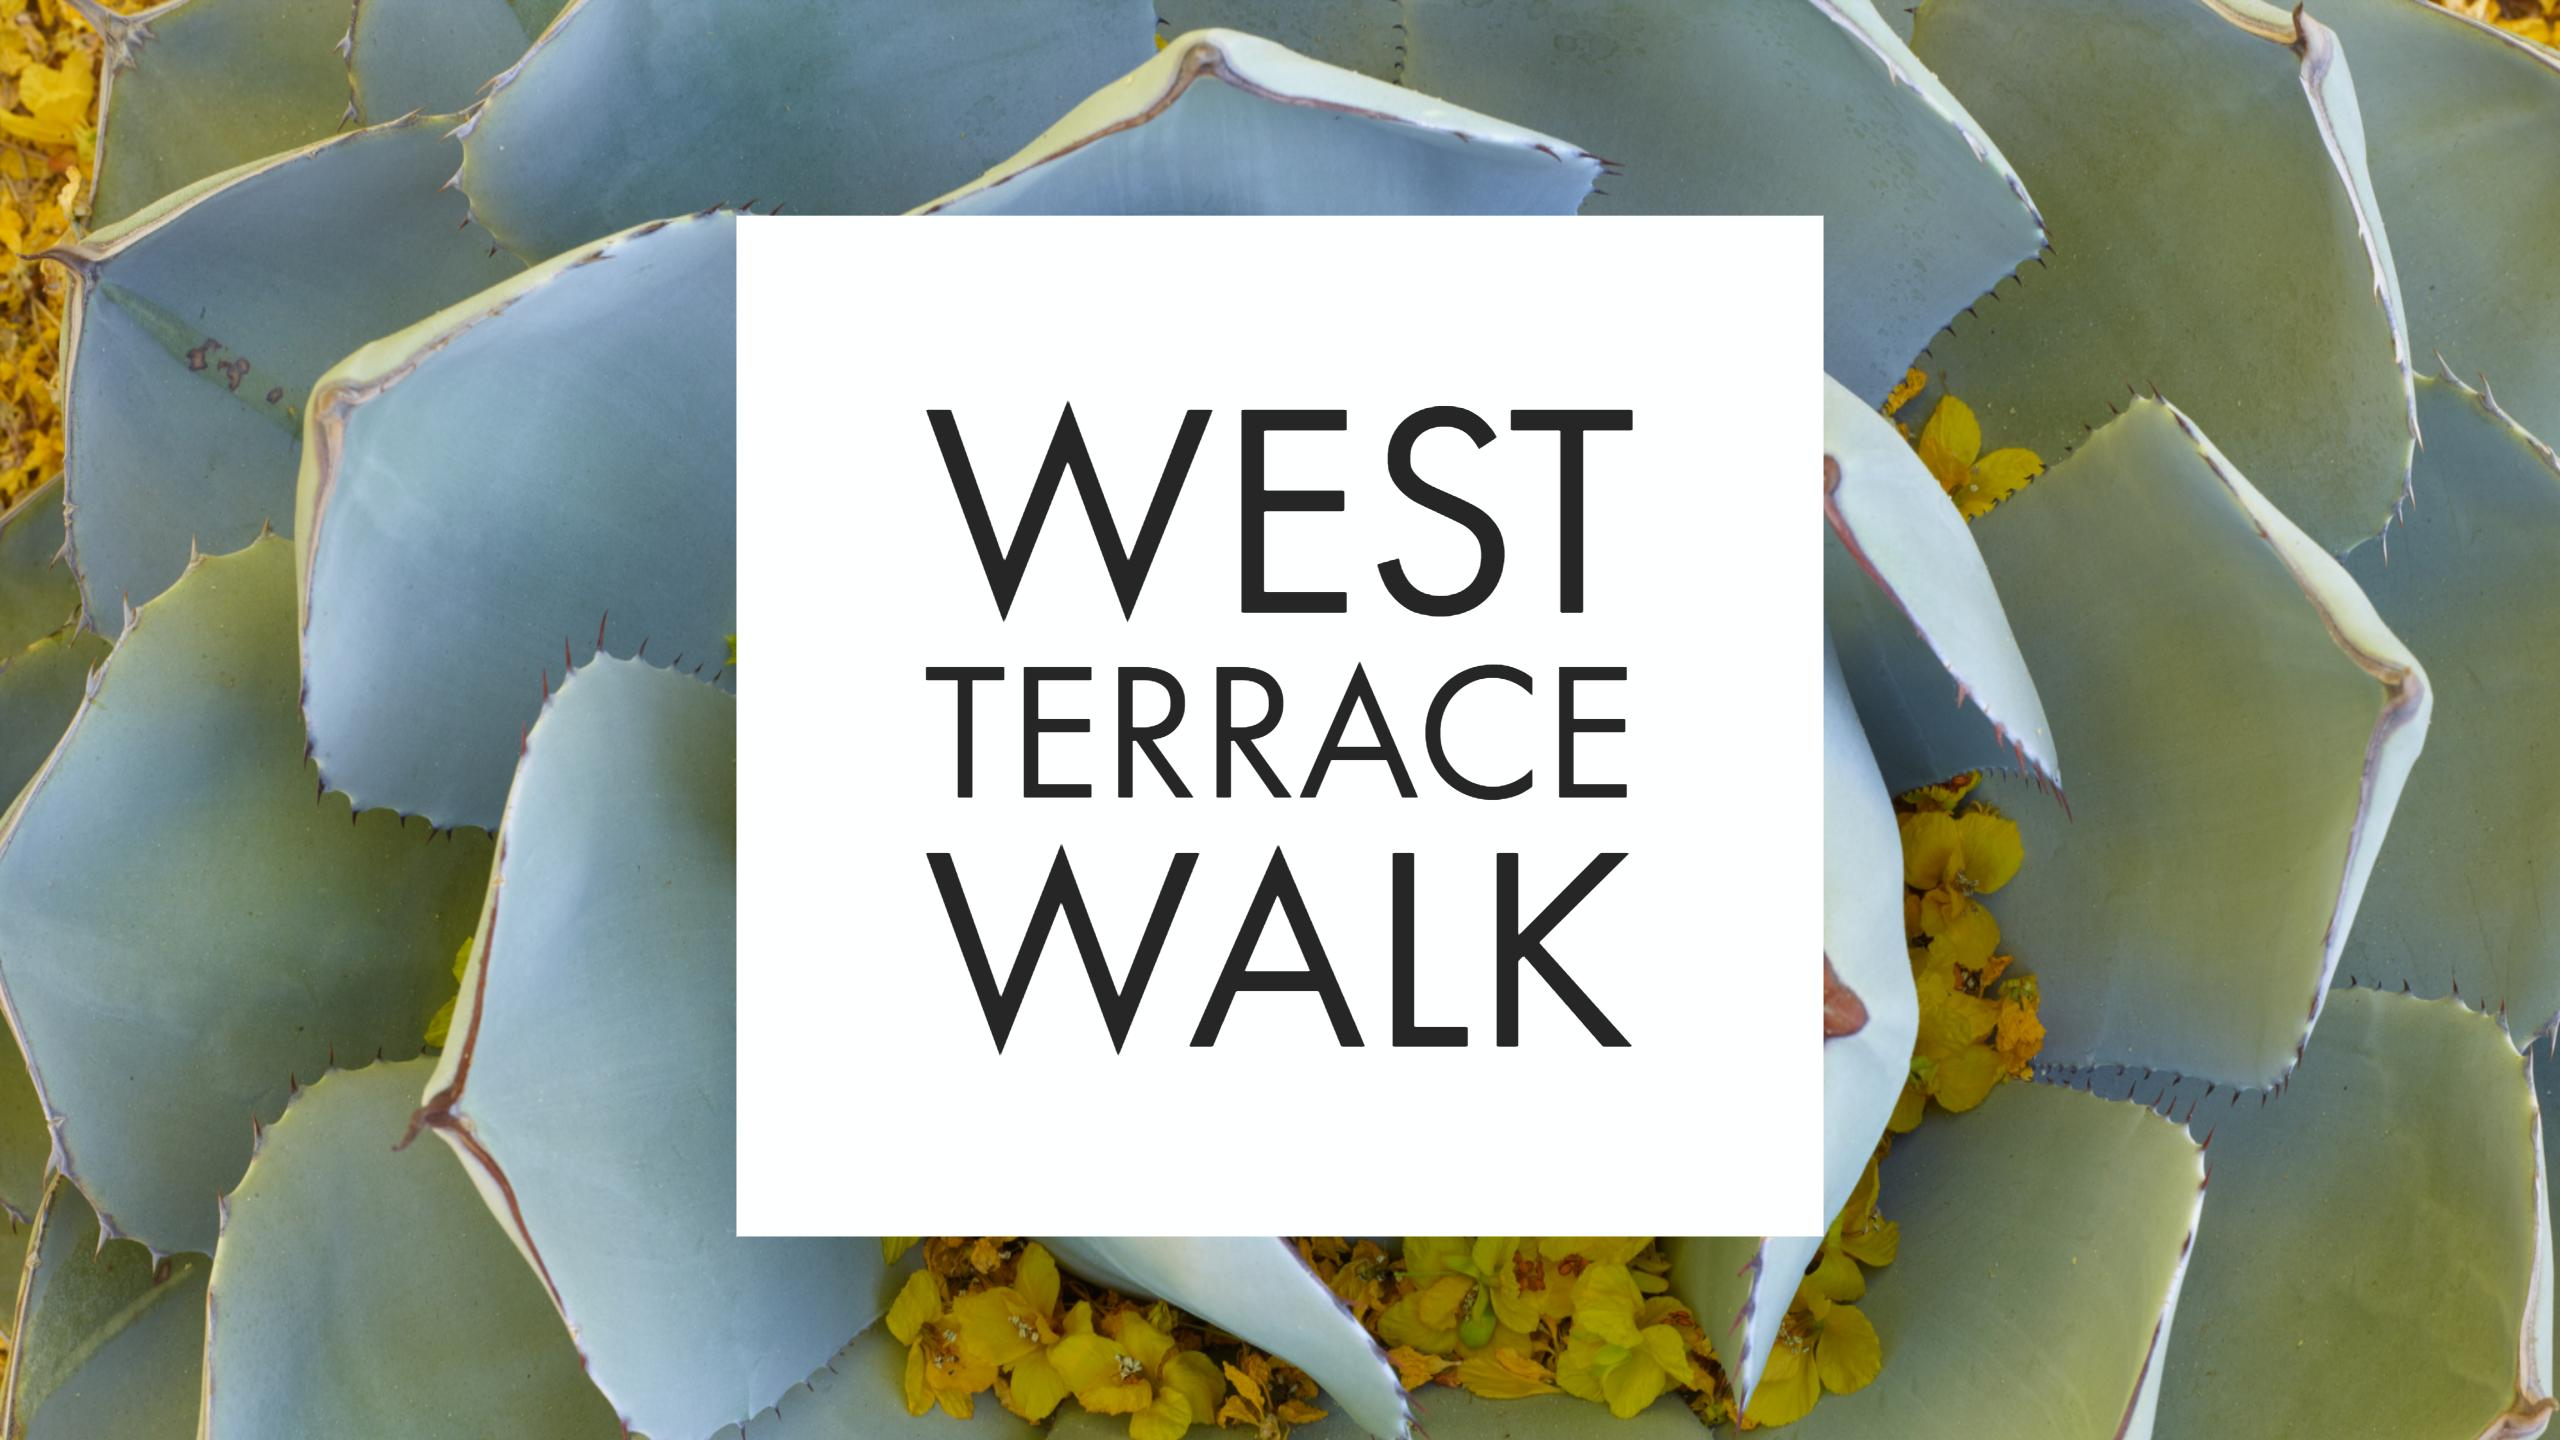 West Terrace Walk